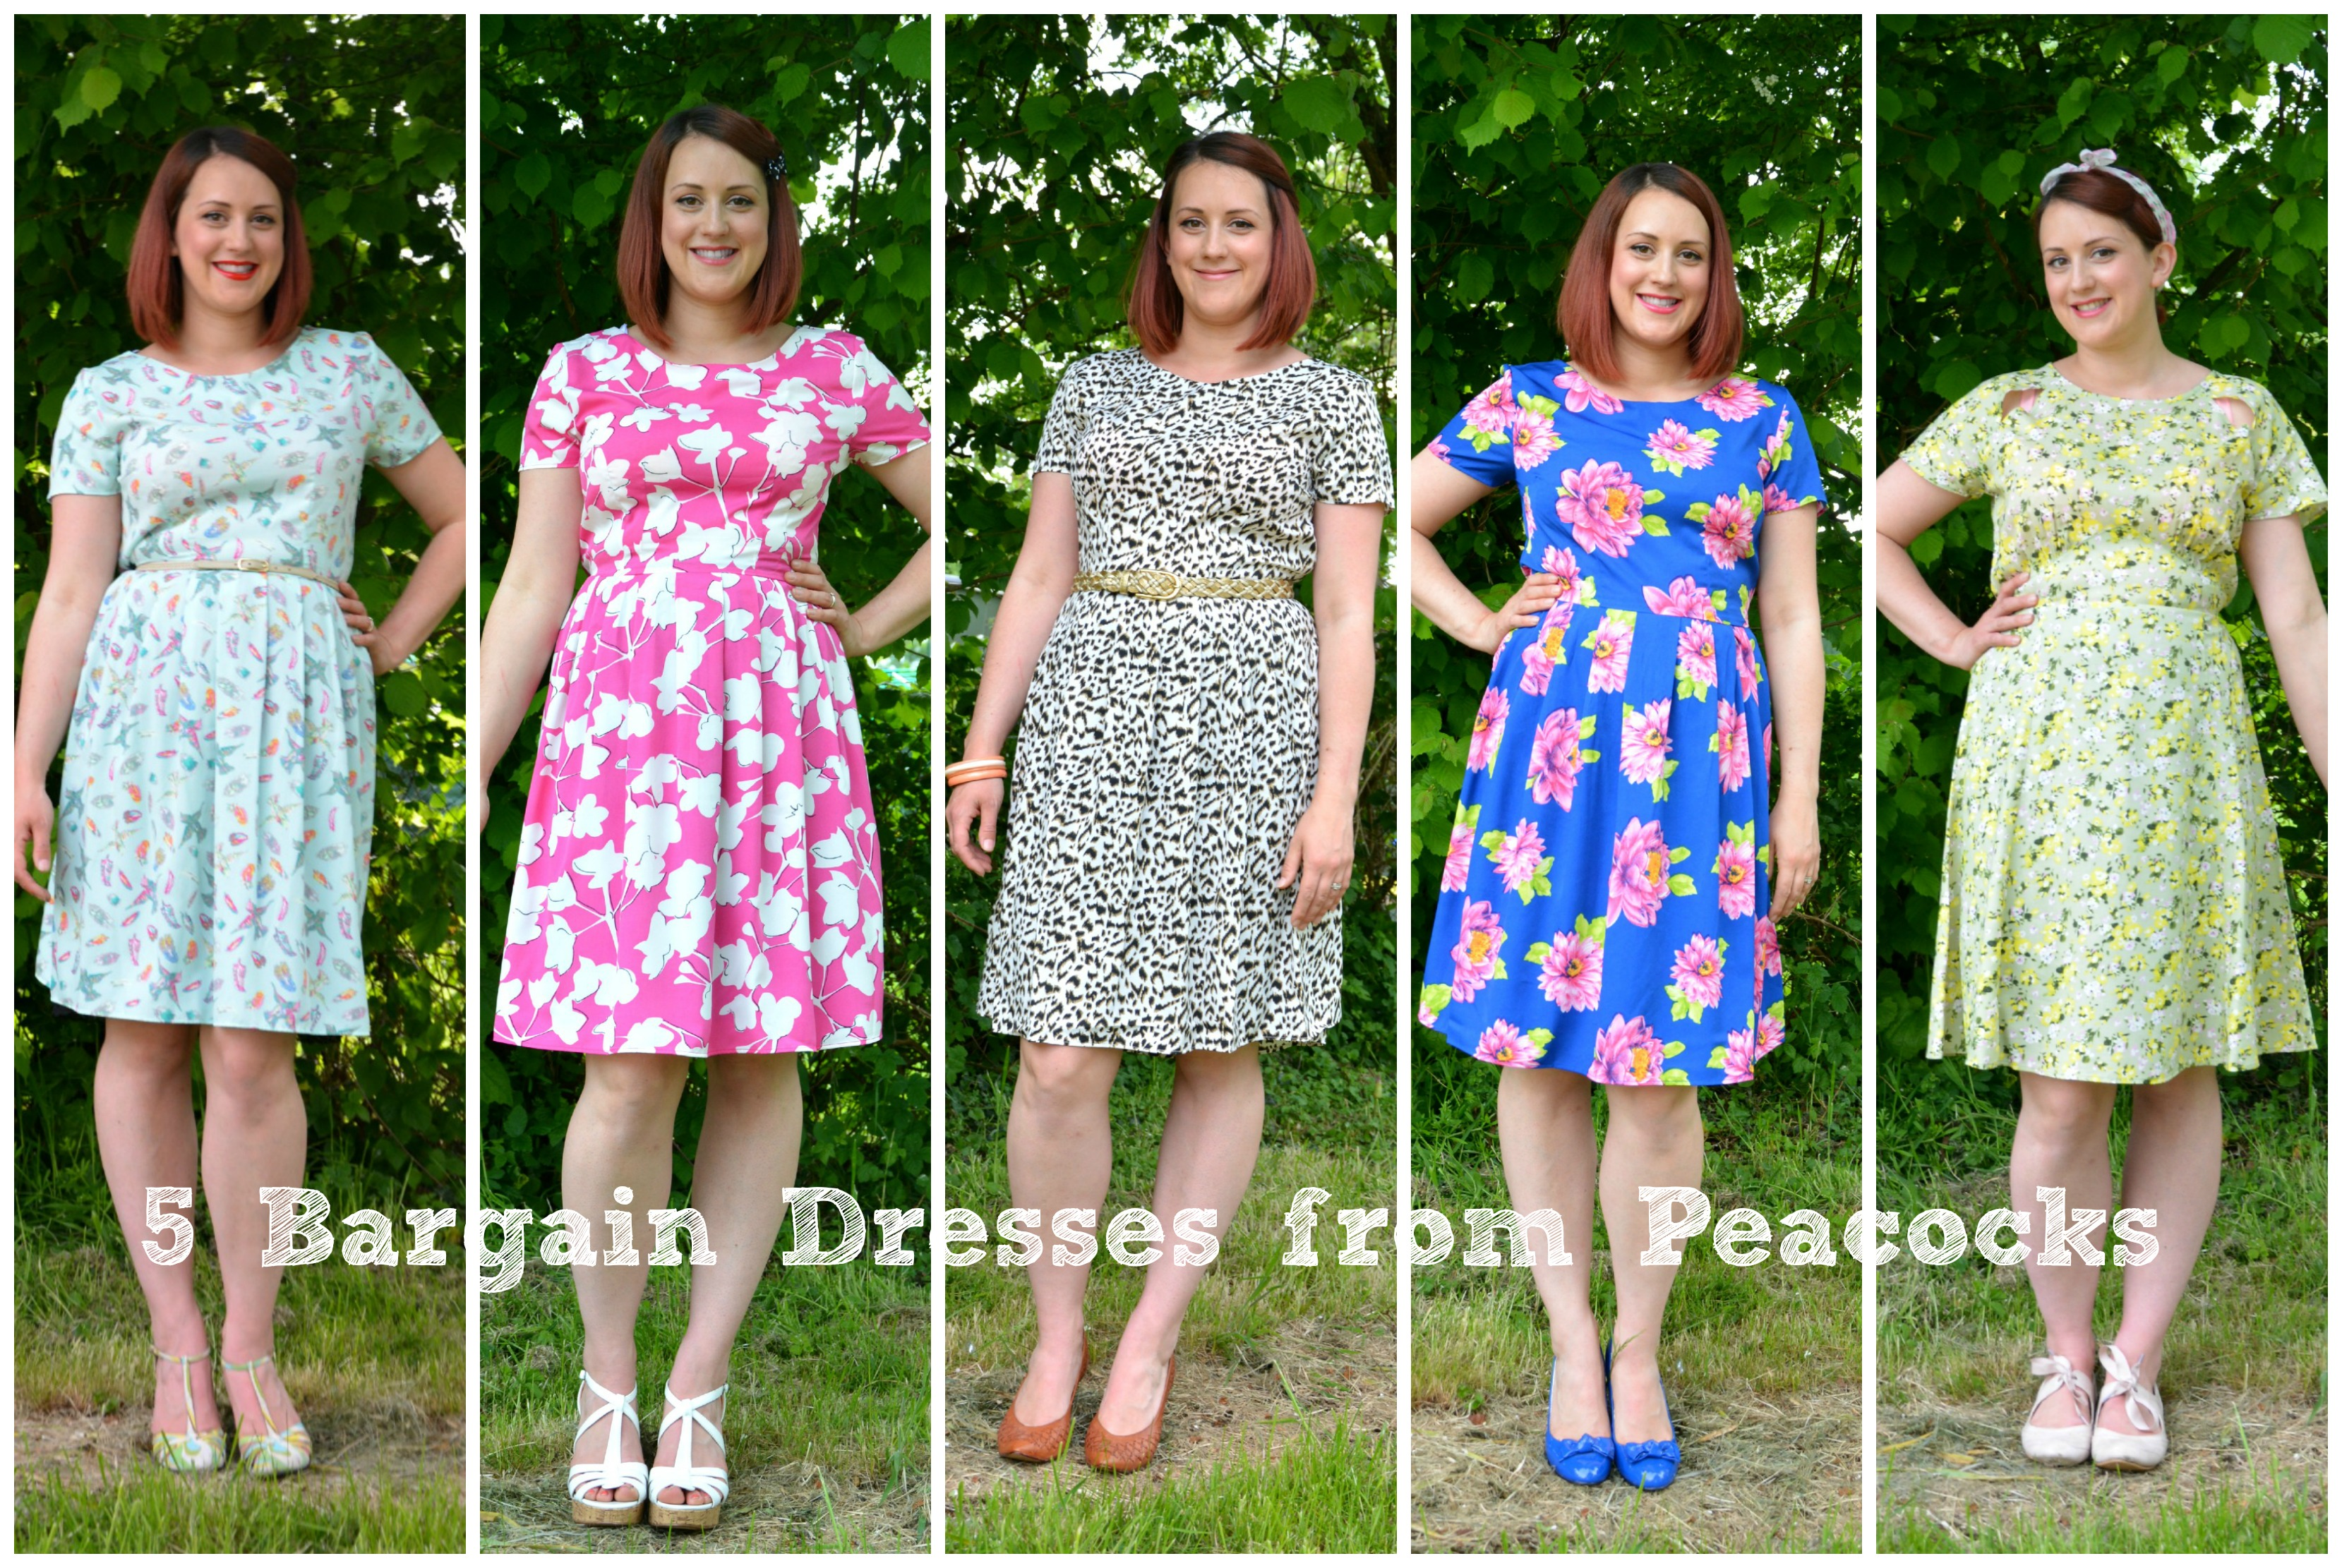 5 Bargain Dresses From Peacocks